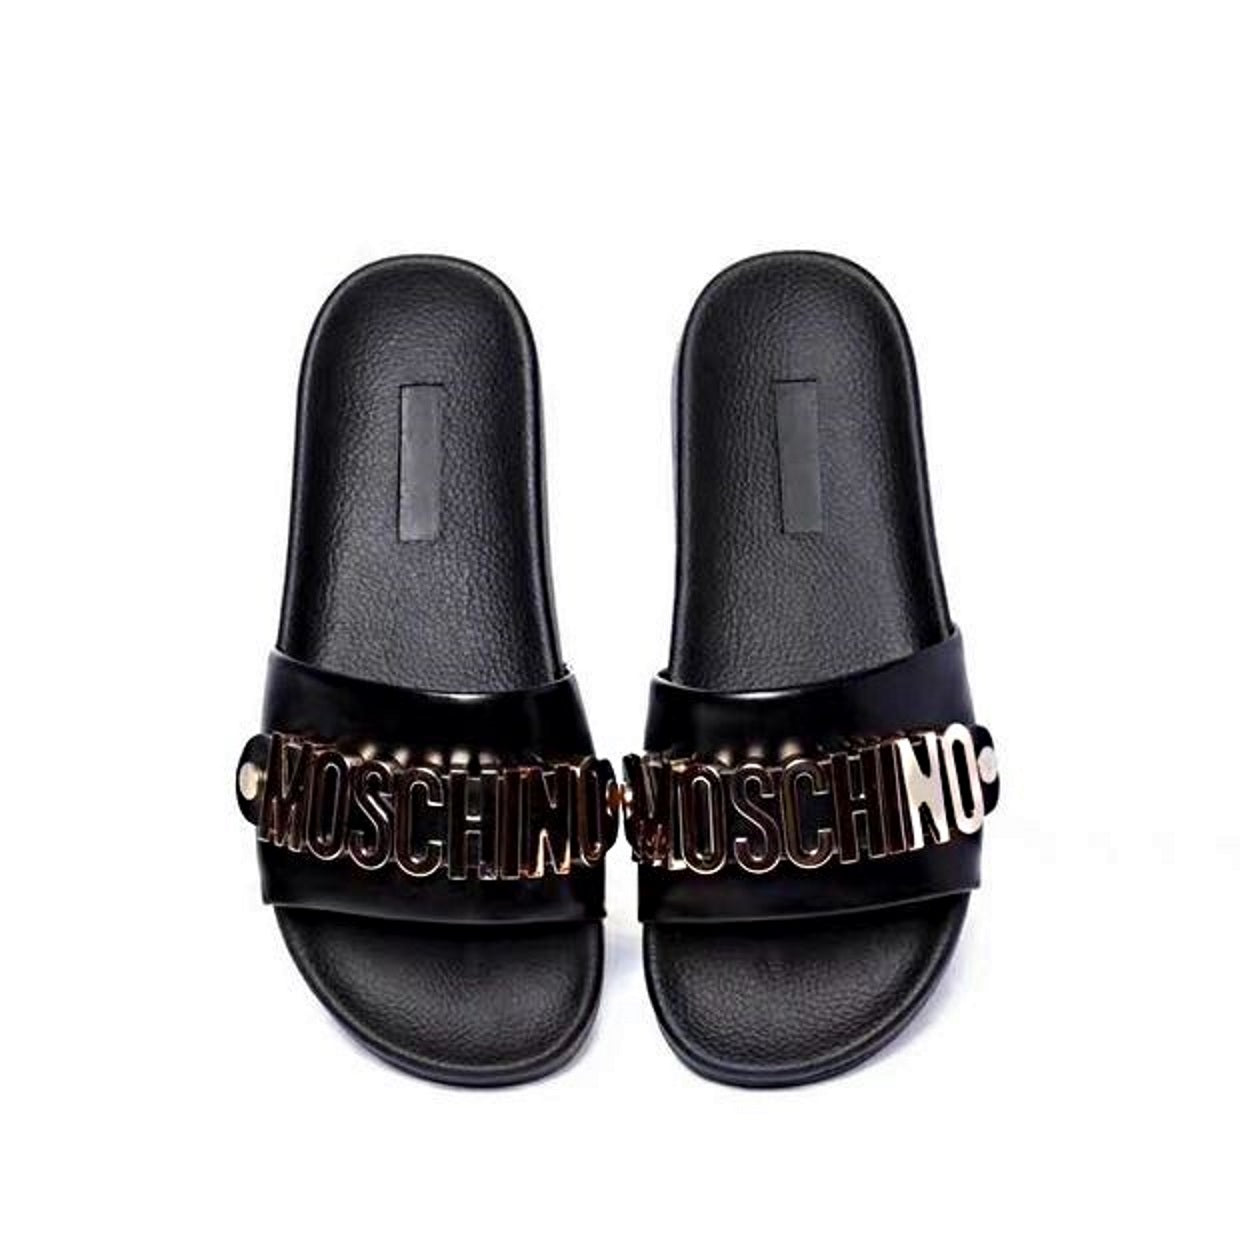 a32c23ada ... Load image into Gallery viewer, Moschino Slippers Slides 2 Color ...